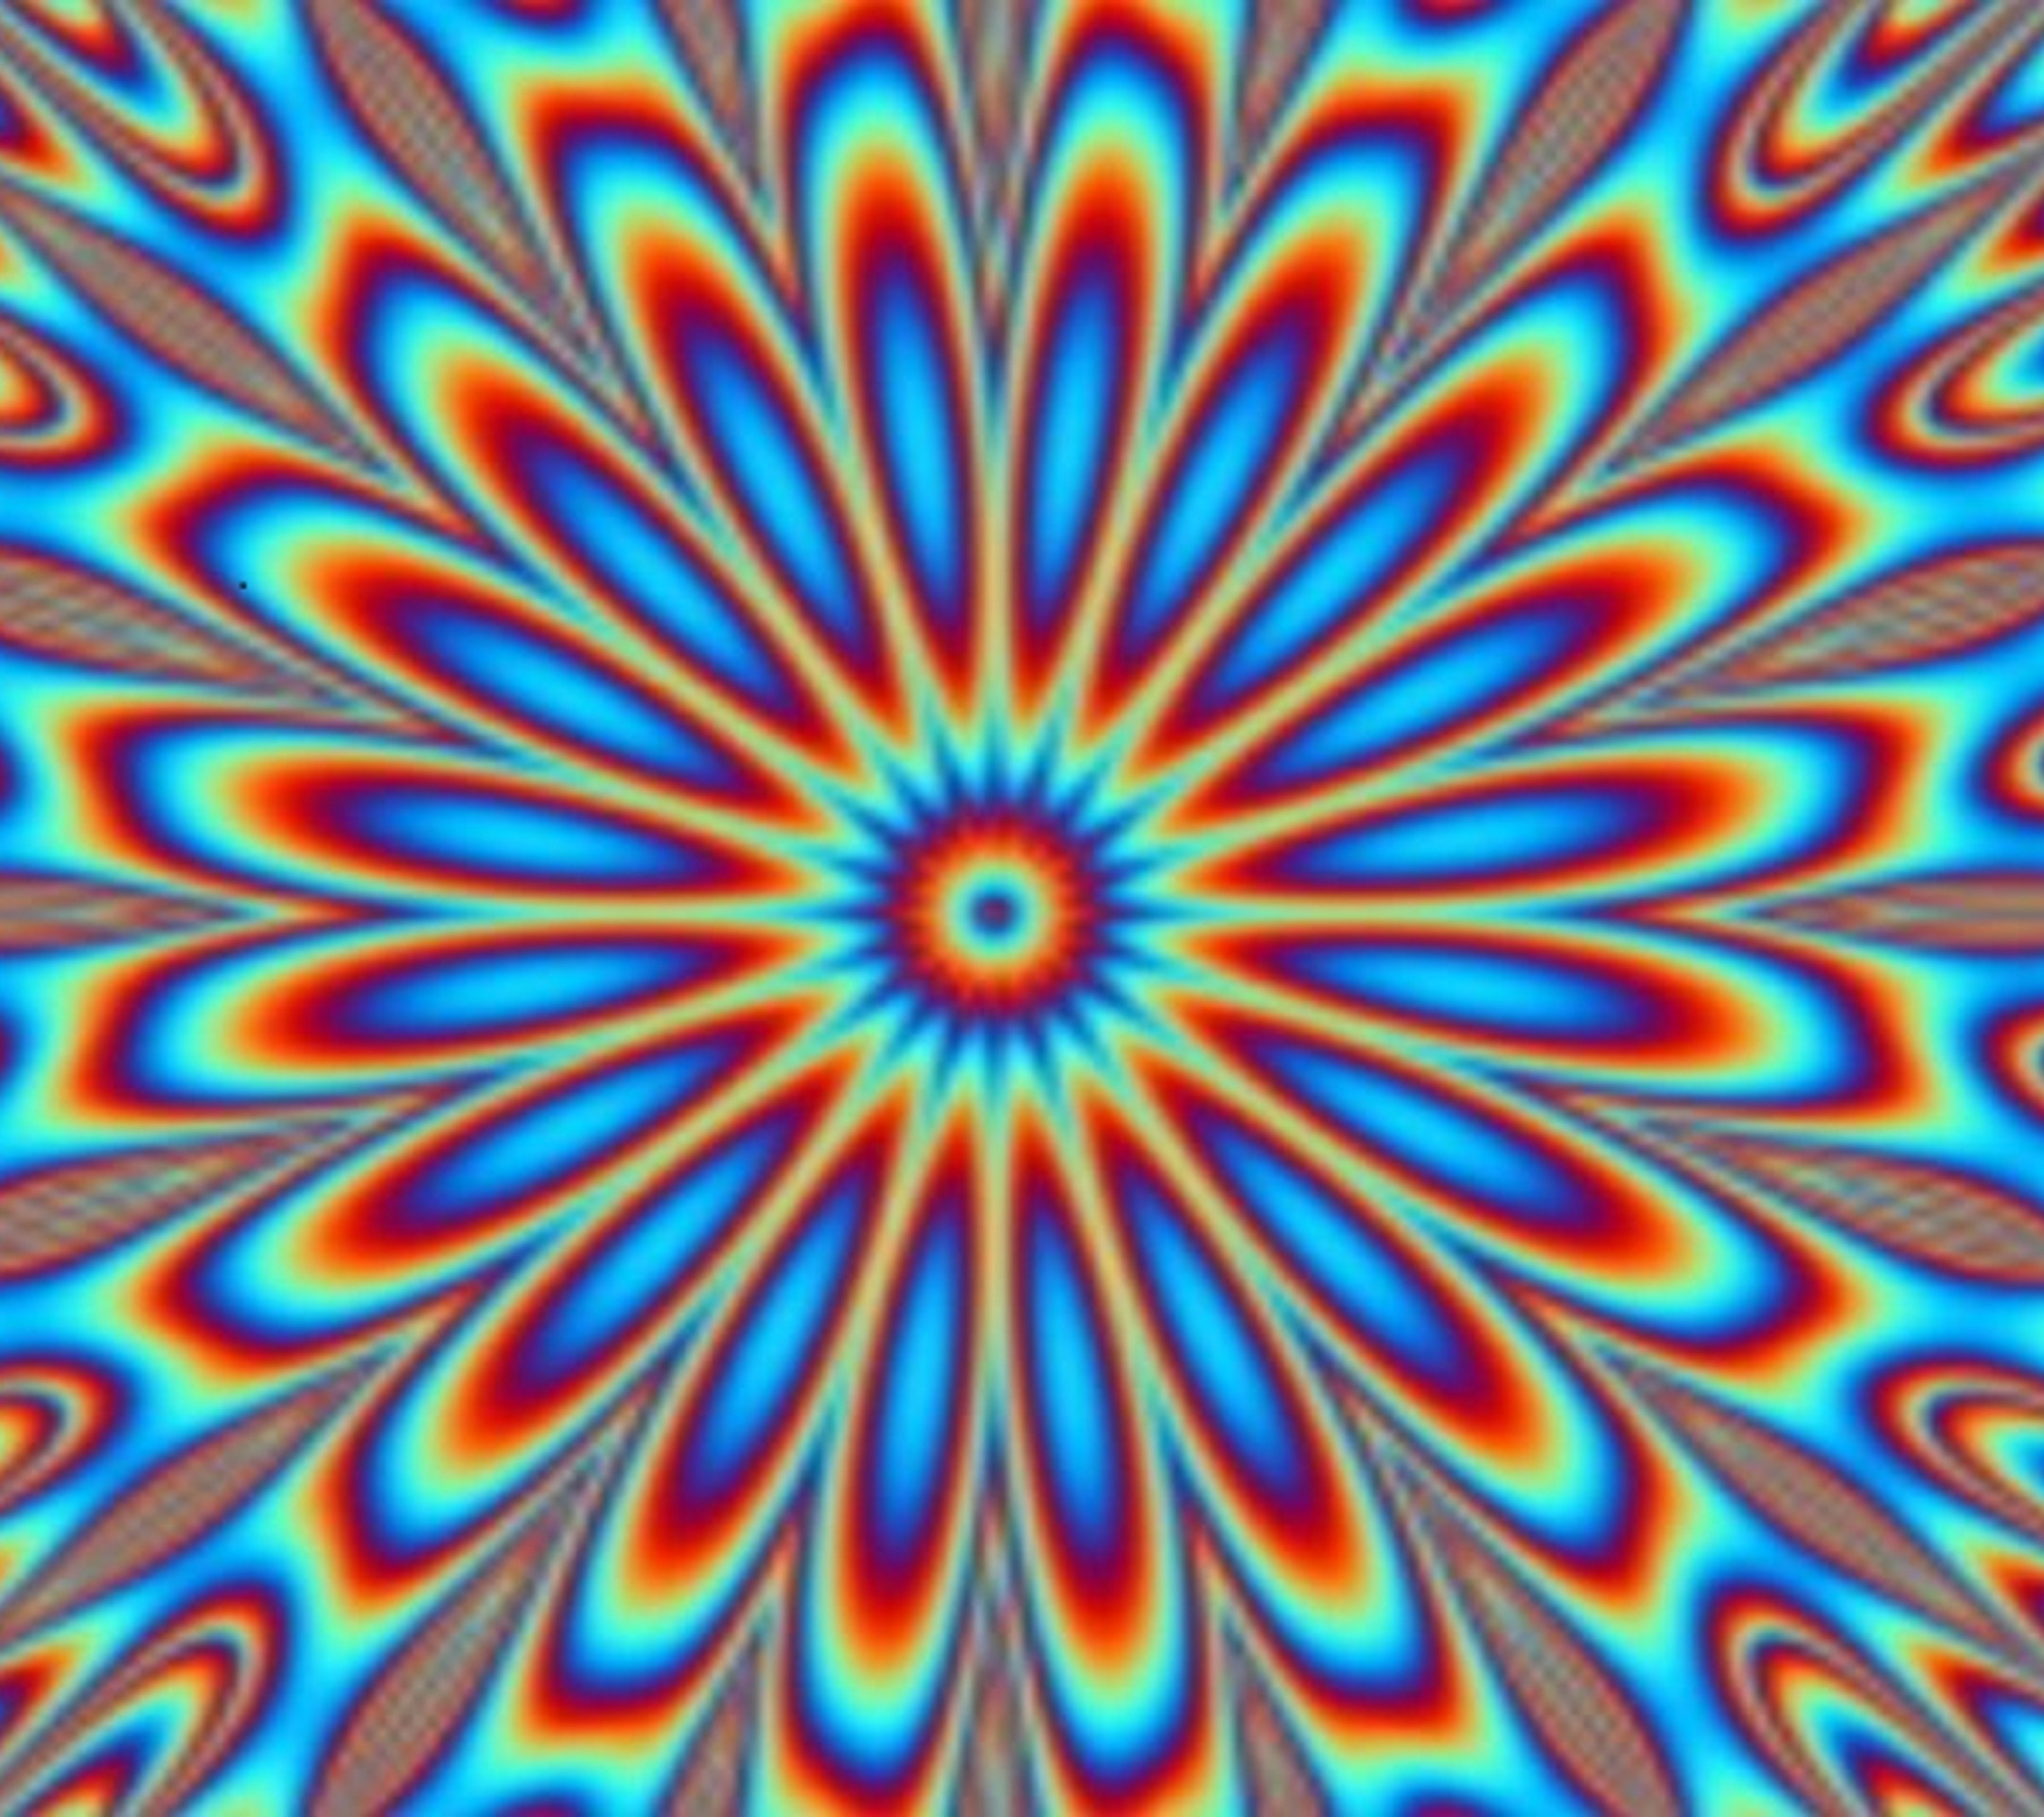 2160x1920 Artistic Psychedelic. Wallpaper 583572